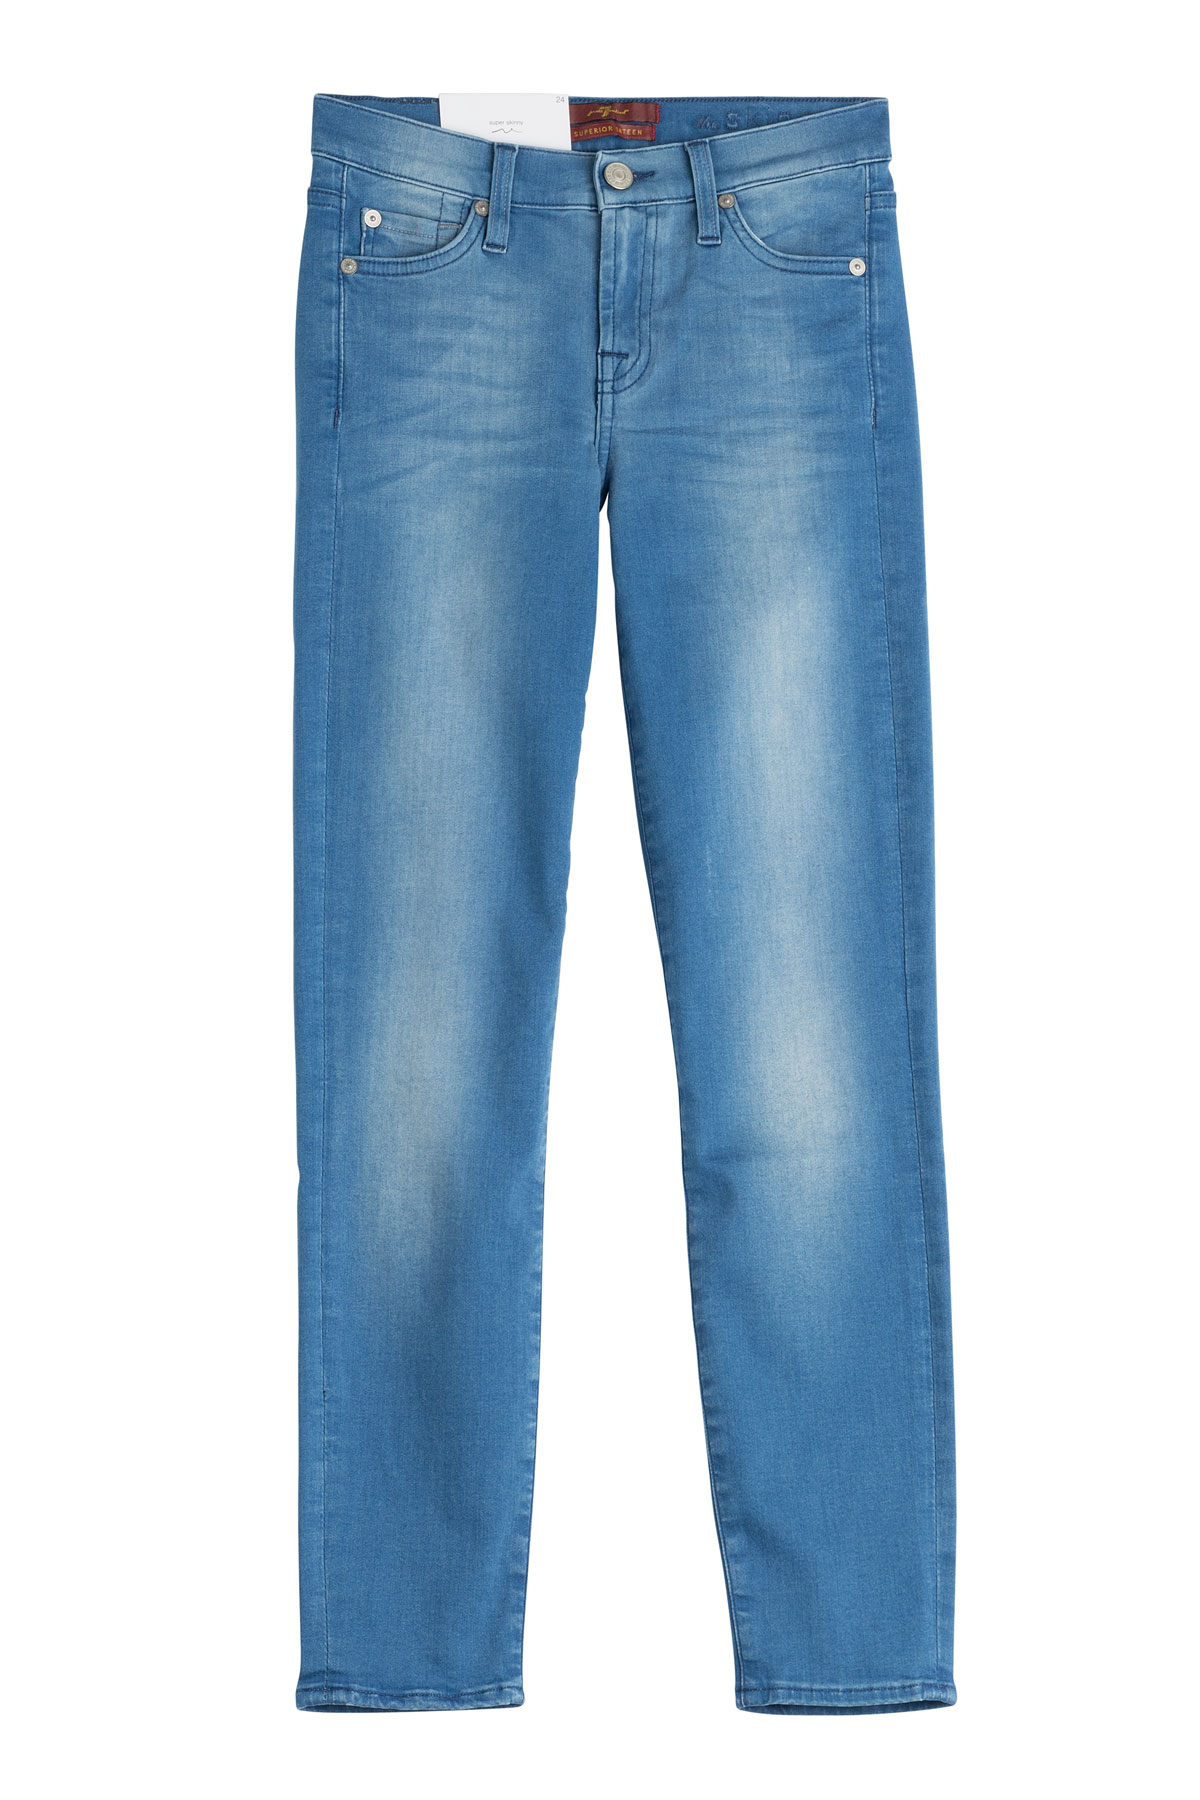 for all mankind stretch cotton skinny jeans blue in blue lyst. Black Bedroom Furniture Sets. Home Design Ideas